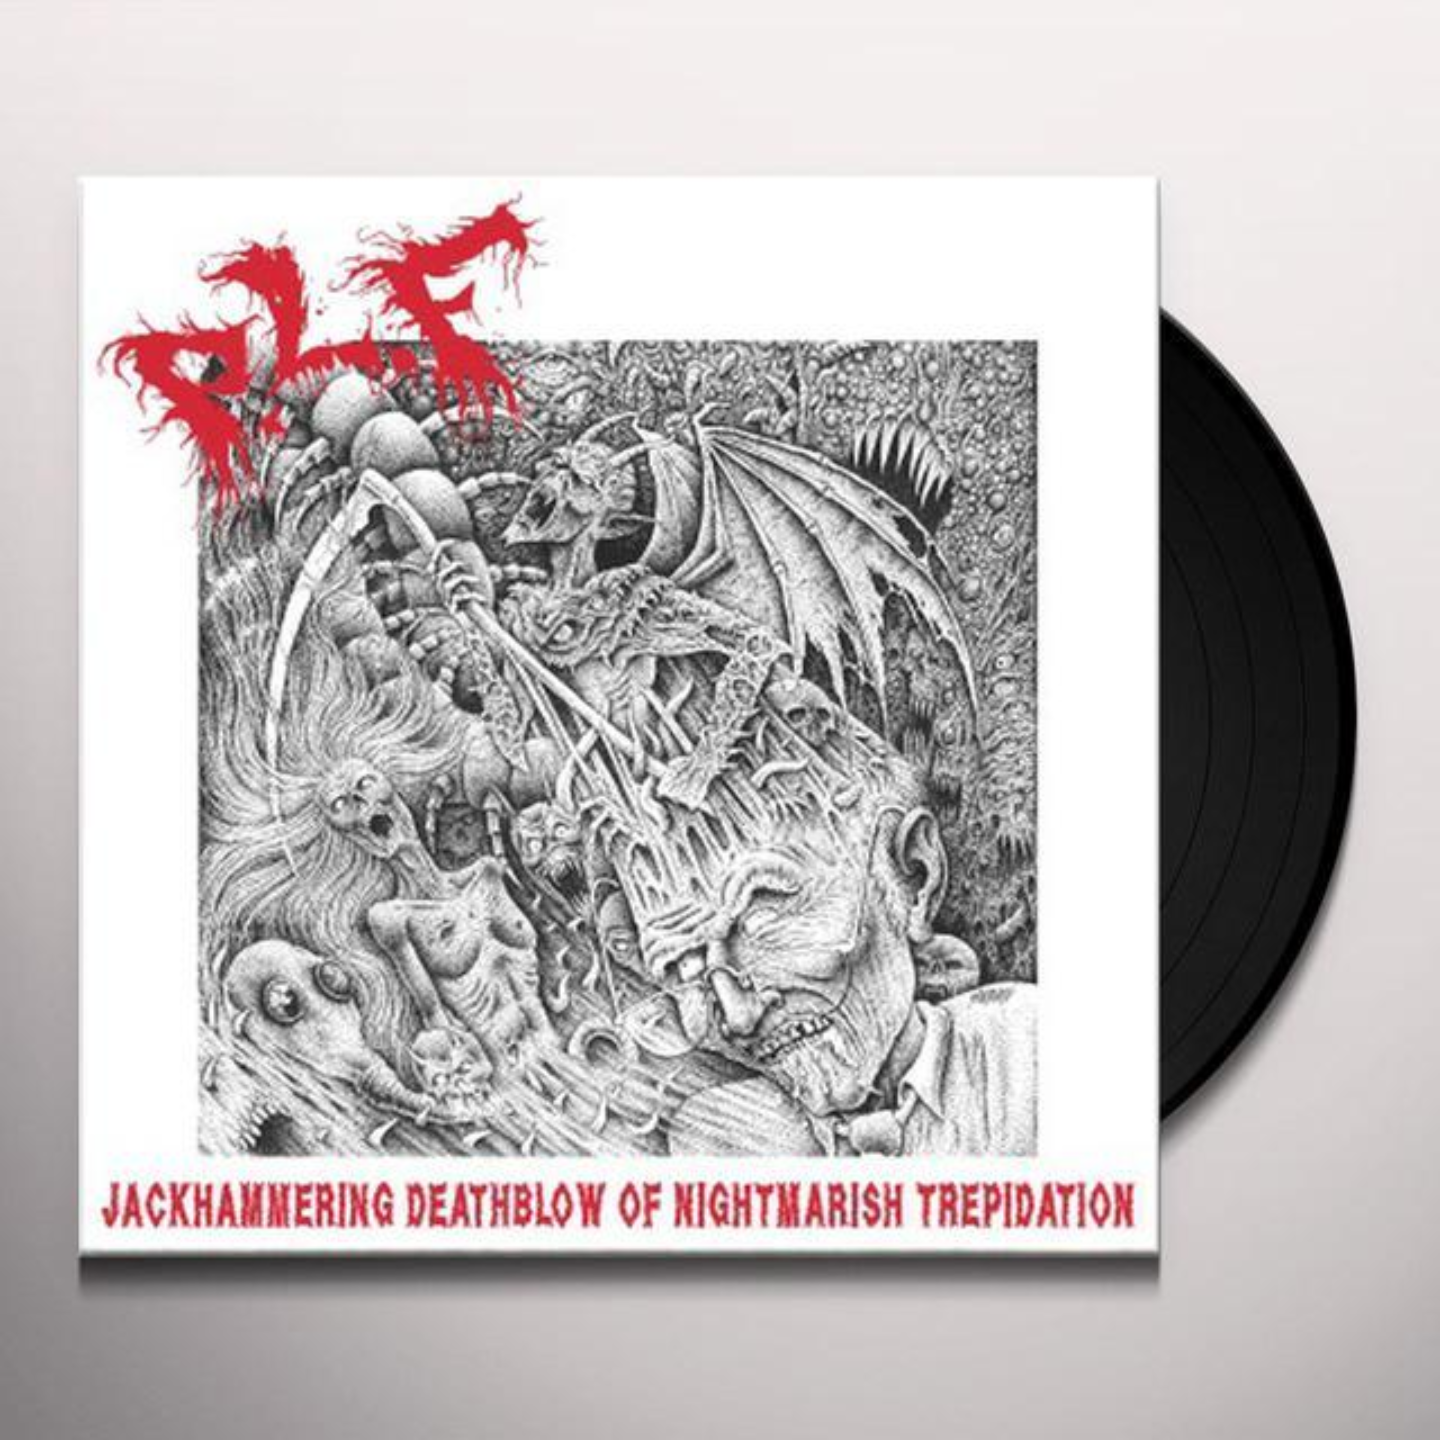 P.L.F - Jackhammering Deathblow Of Nightmarish Trepidation LP